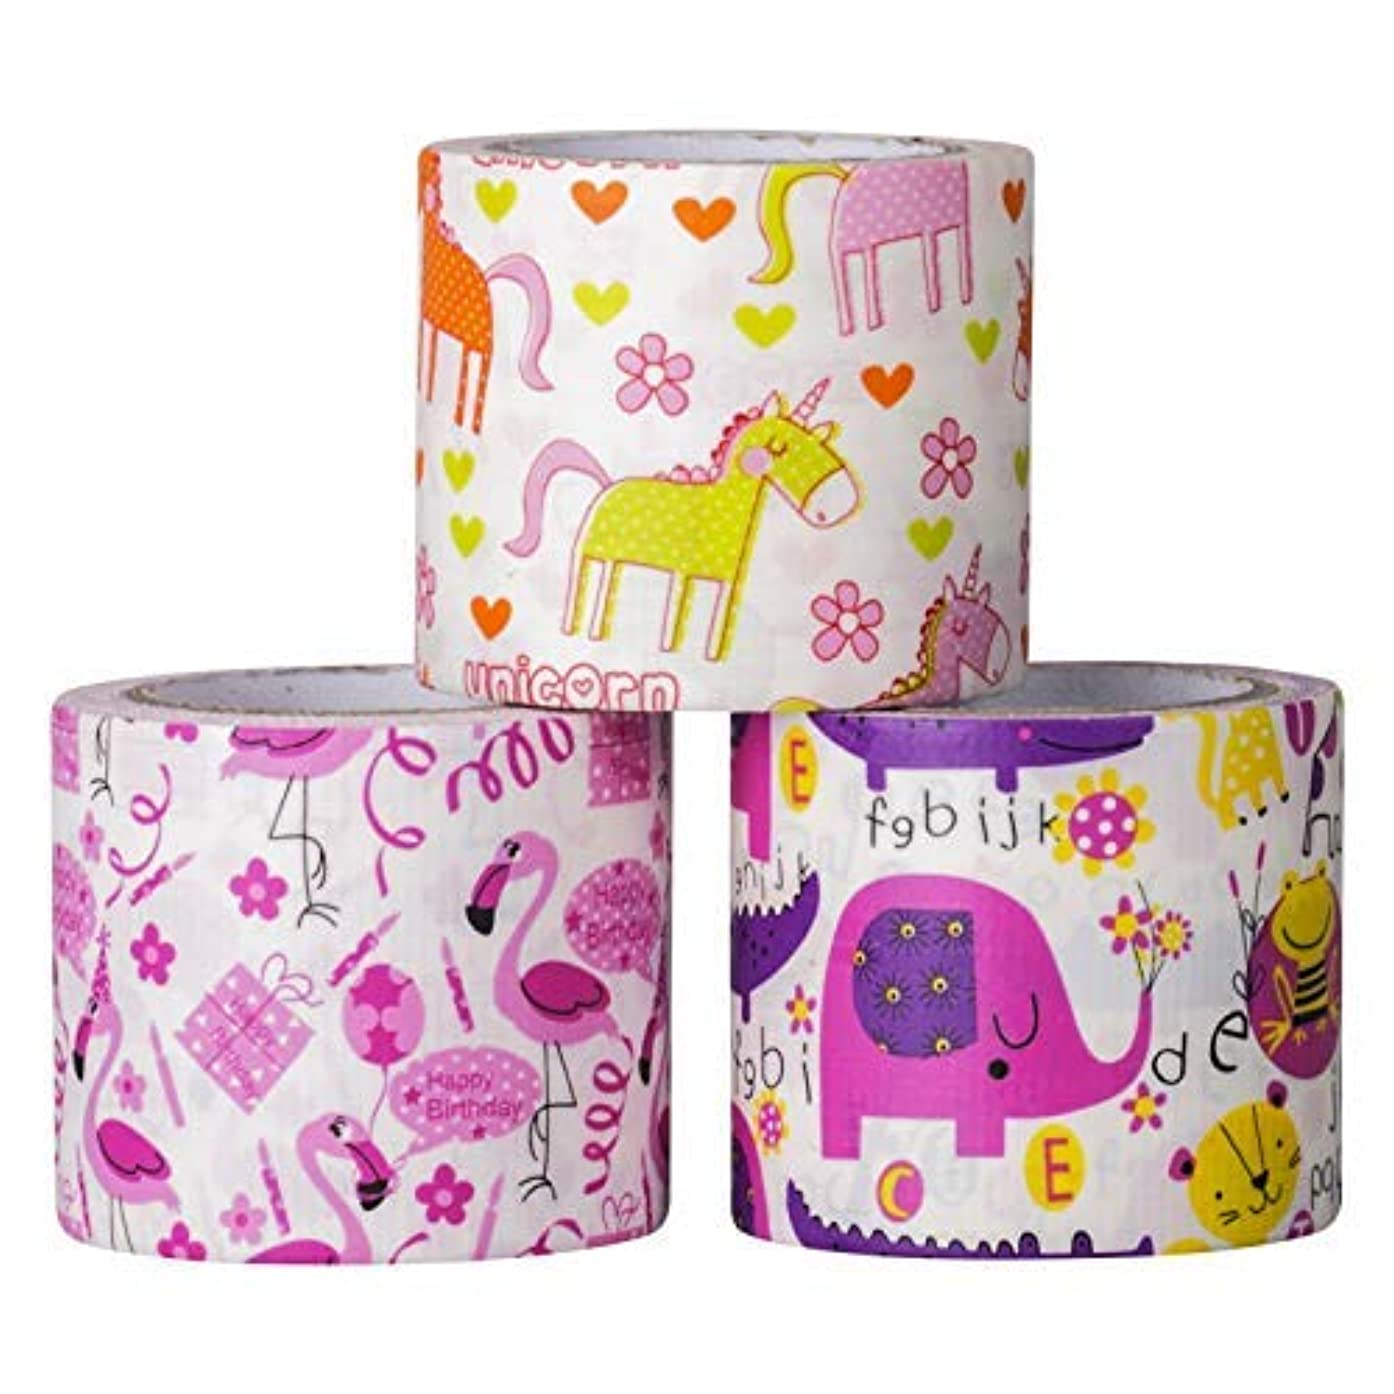 Design Duct Tape 48mm x 16 Feet - Kids Fun Extra Strong Printed Arts & Crafts Multi Pack - by Playlearn (Unicorn Forest)